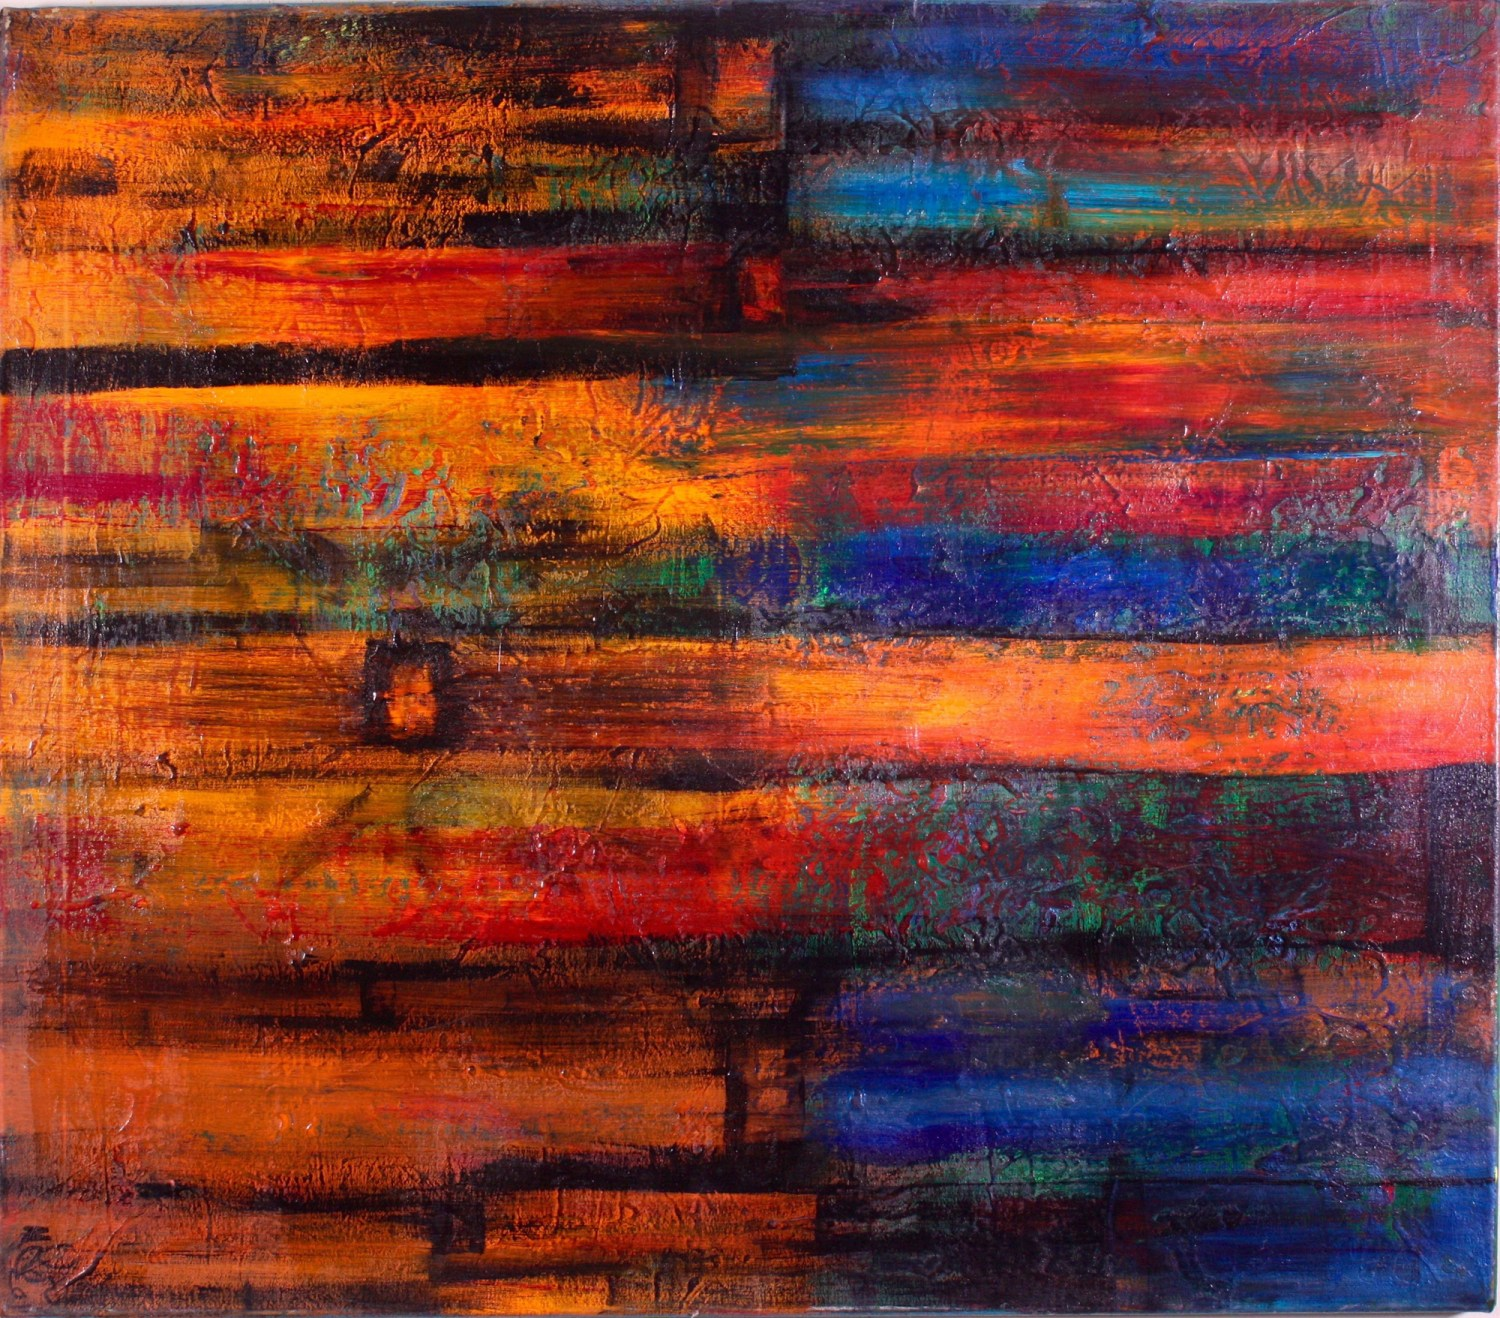 Abstract painting recently sold by abstract artist Nestor Toro